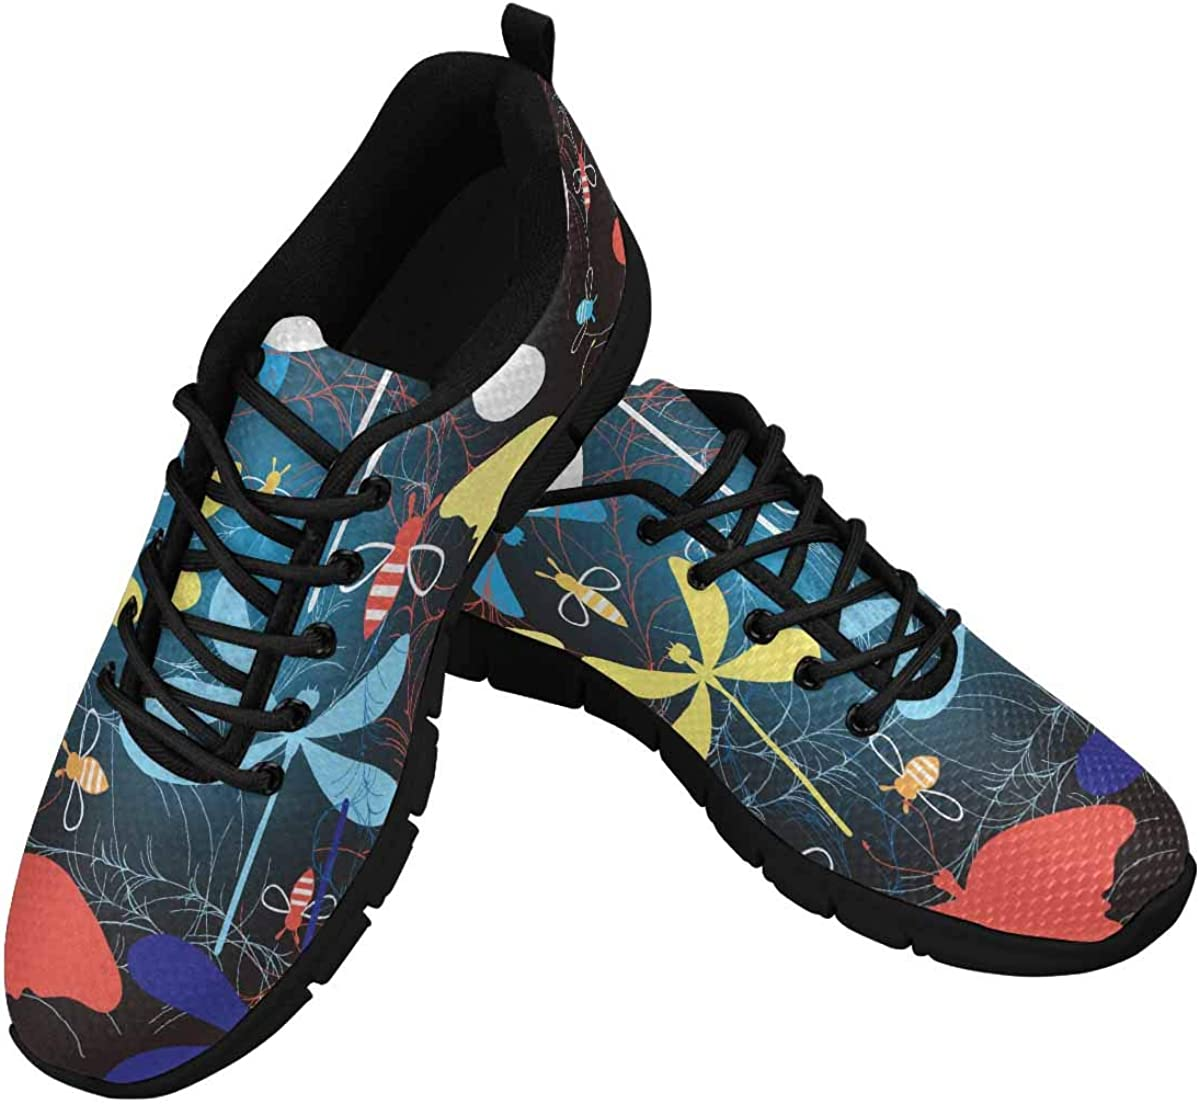 INTERESTPRINT Beautiful Dragonfly and Honeybee Women's Lightweight Athletic Casual Gym Sneakers